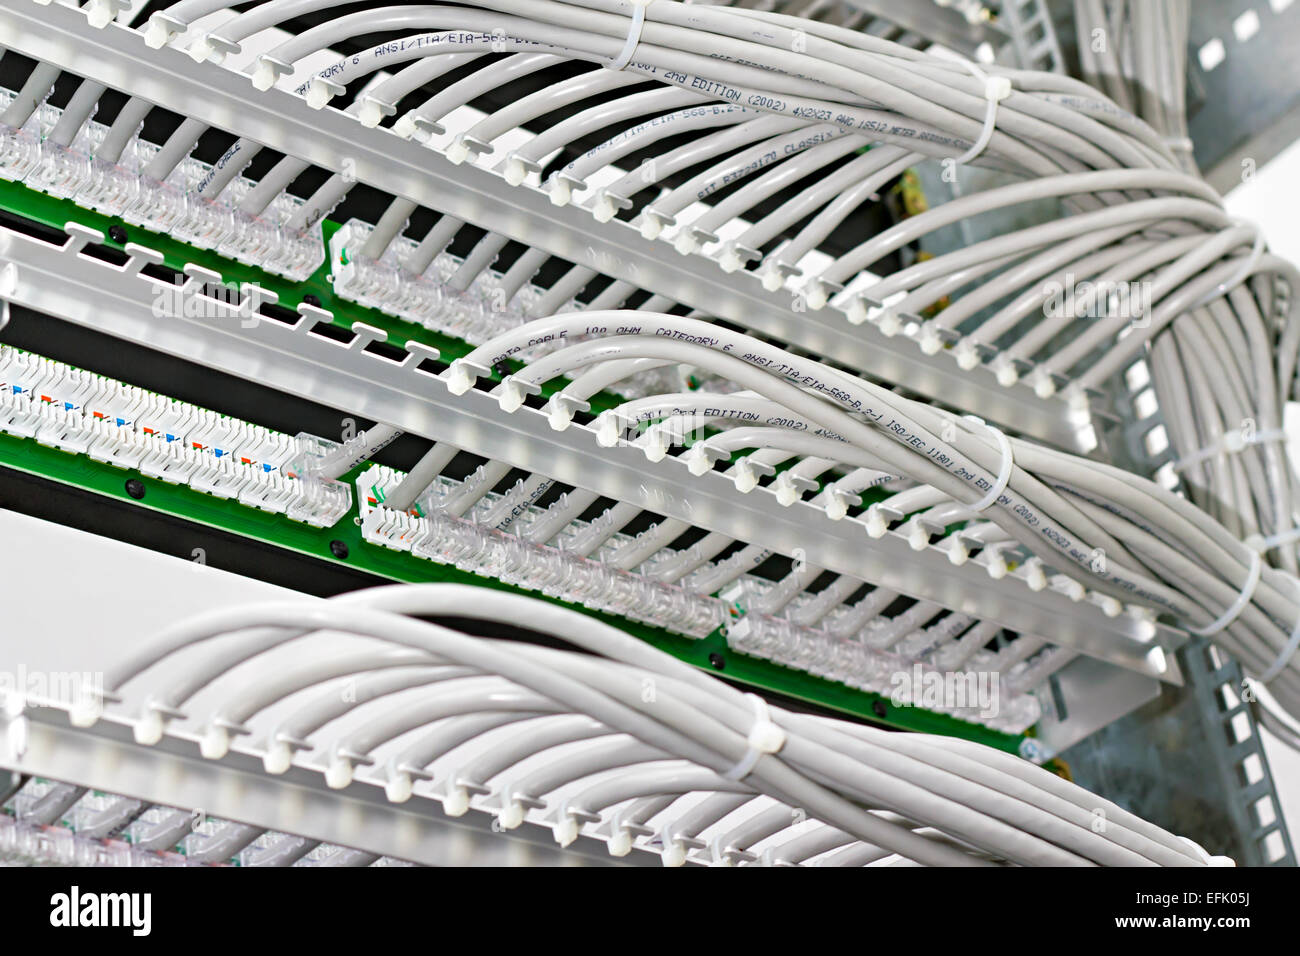 Wiring Closet Stock Photos Images Alamy Internet Kind Of Patch Panels With 6 Th Category In The Background